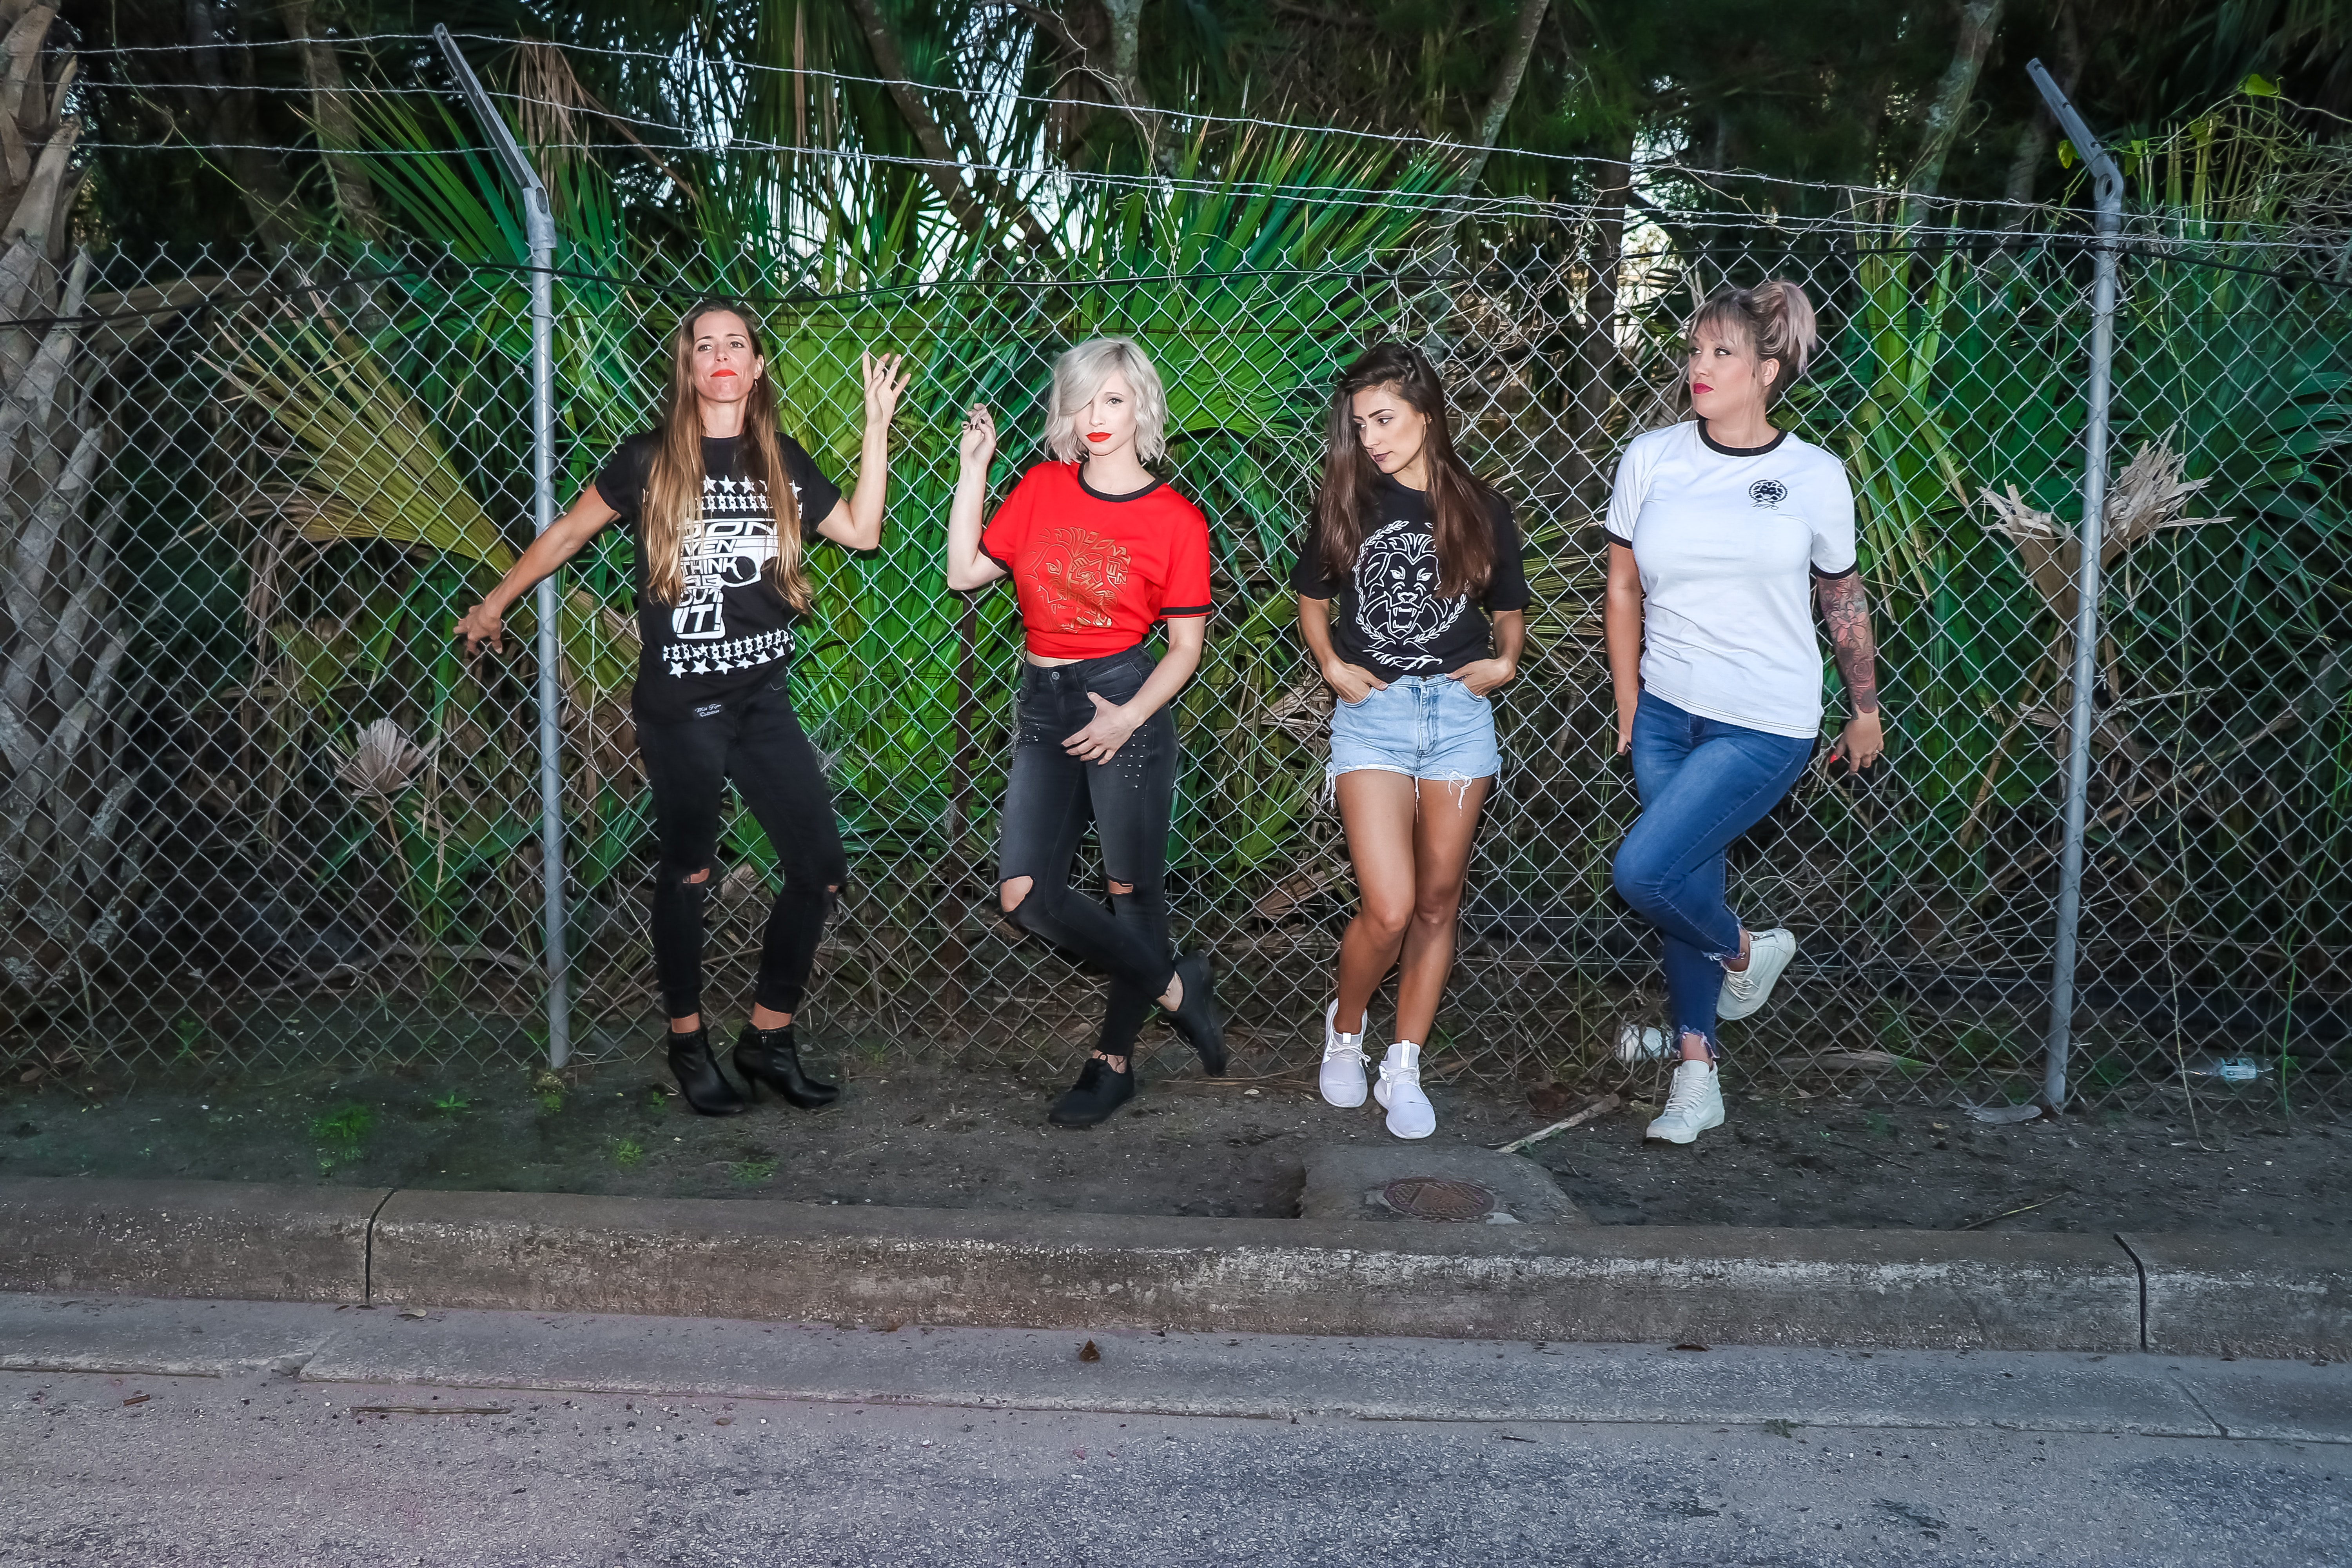 Group of Women Standing in Front Metal Fence, Adult, People, Wear, Road, HQ Photo